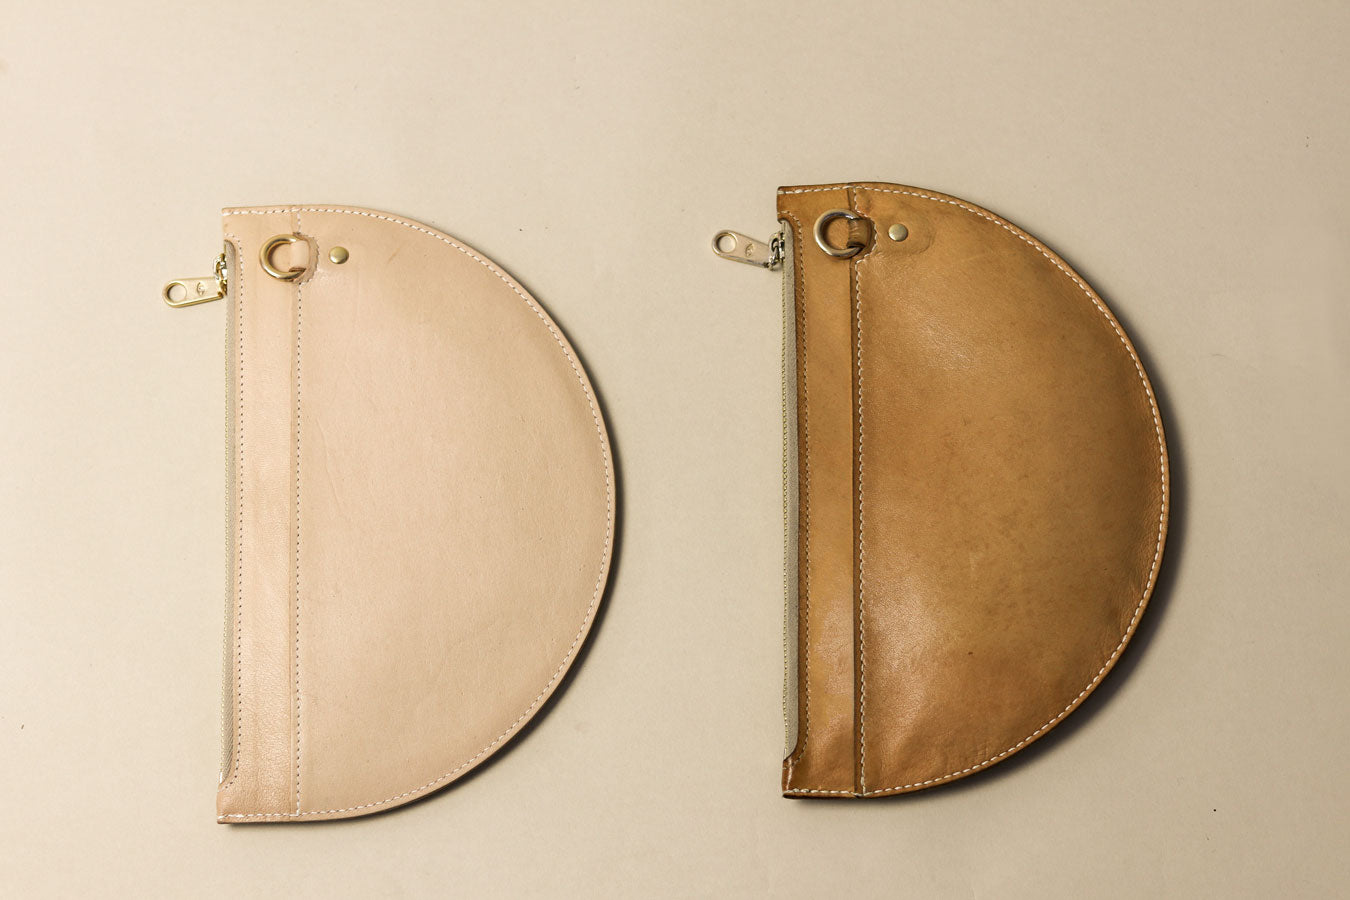 two natural kangaroo leather bags